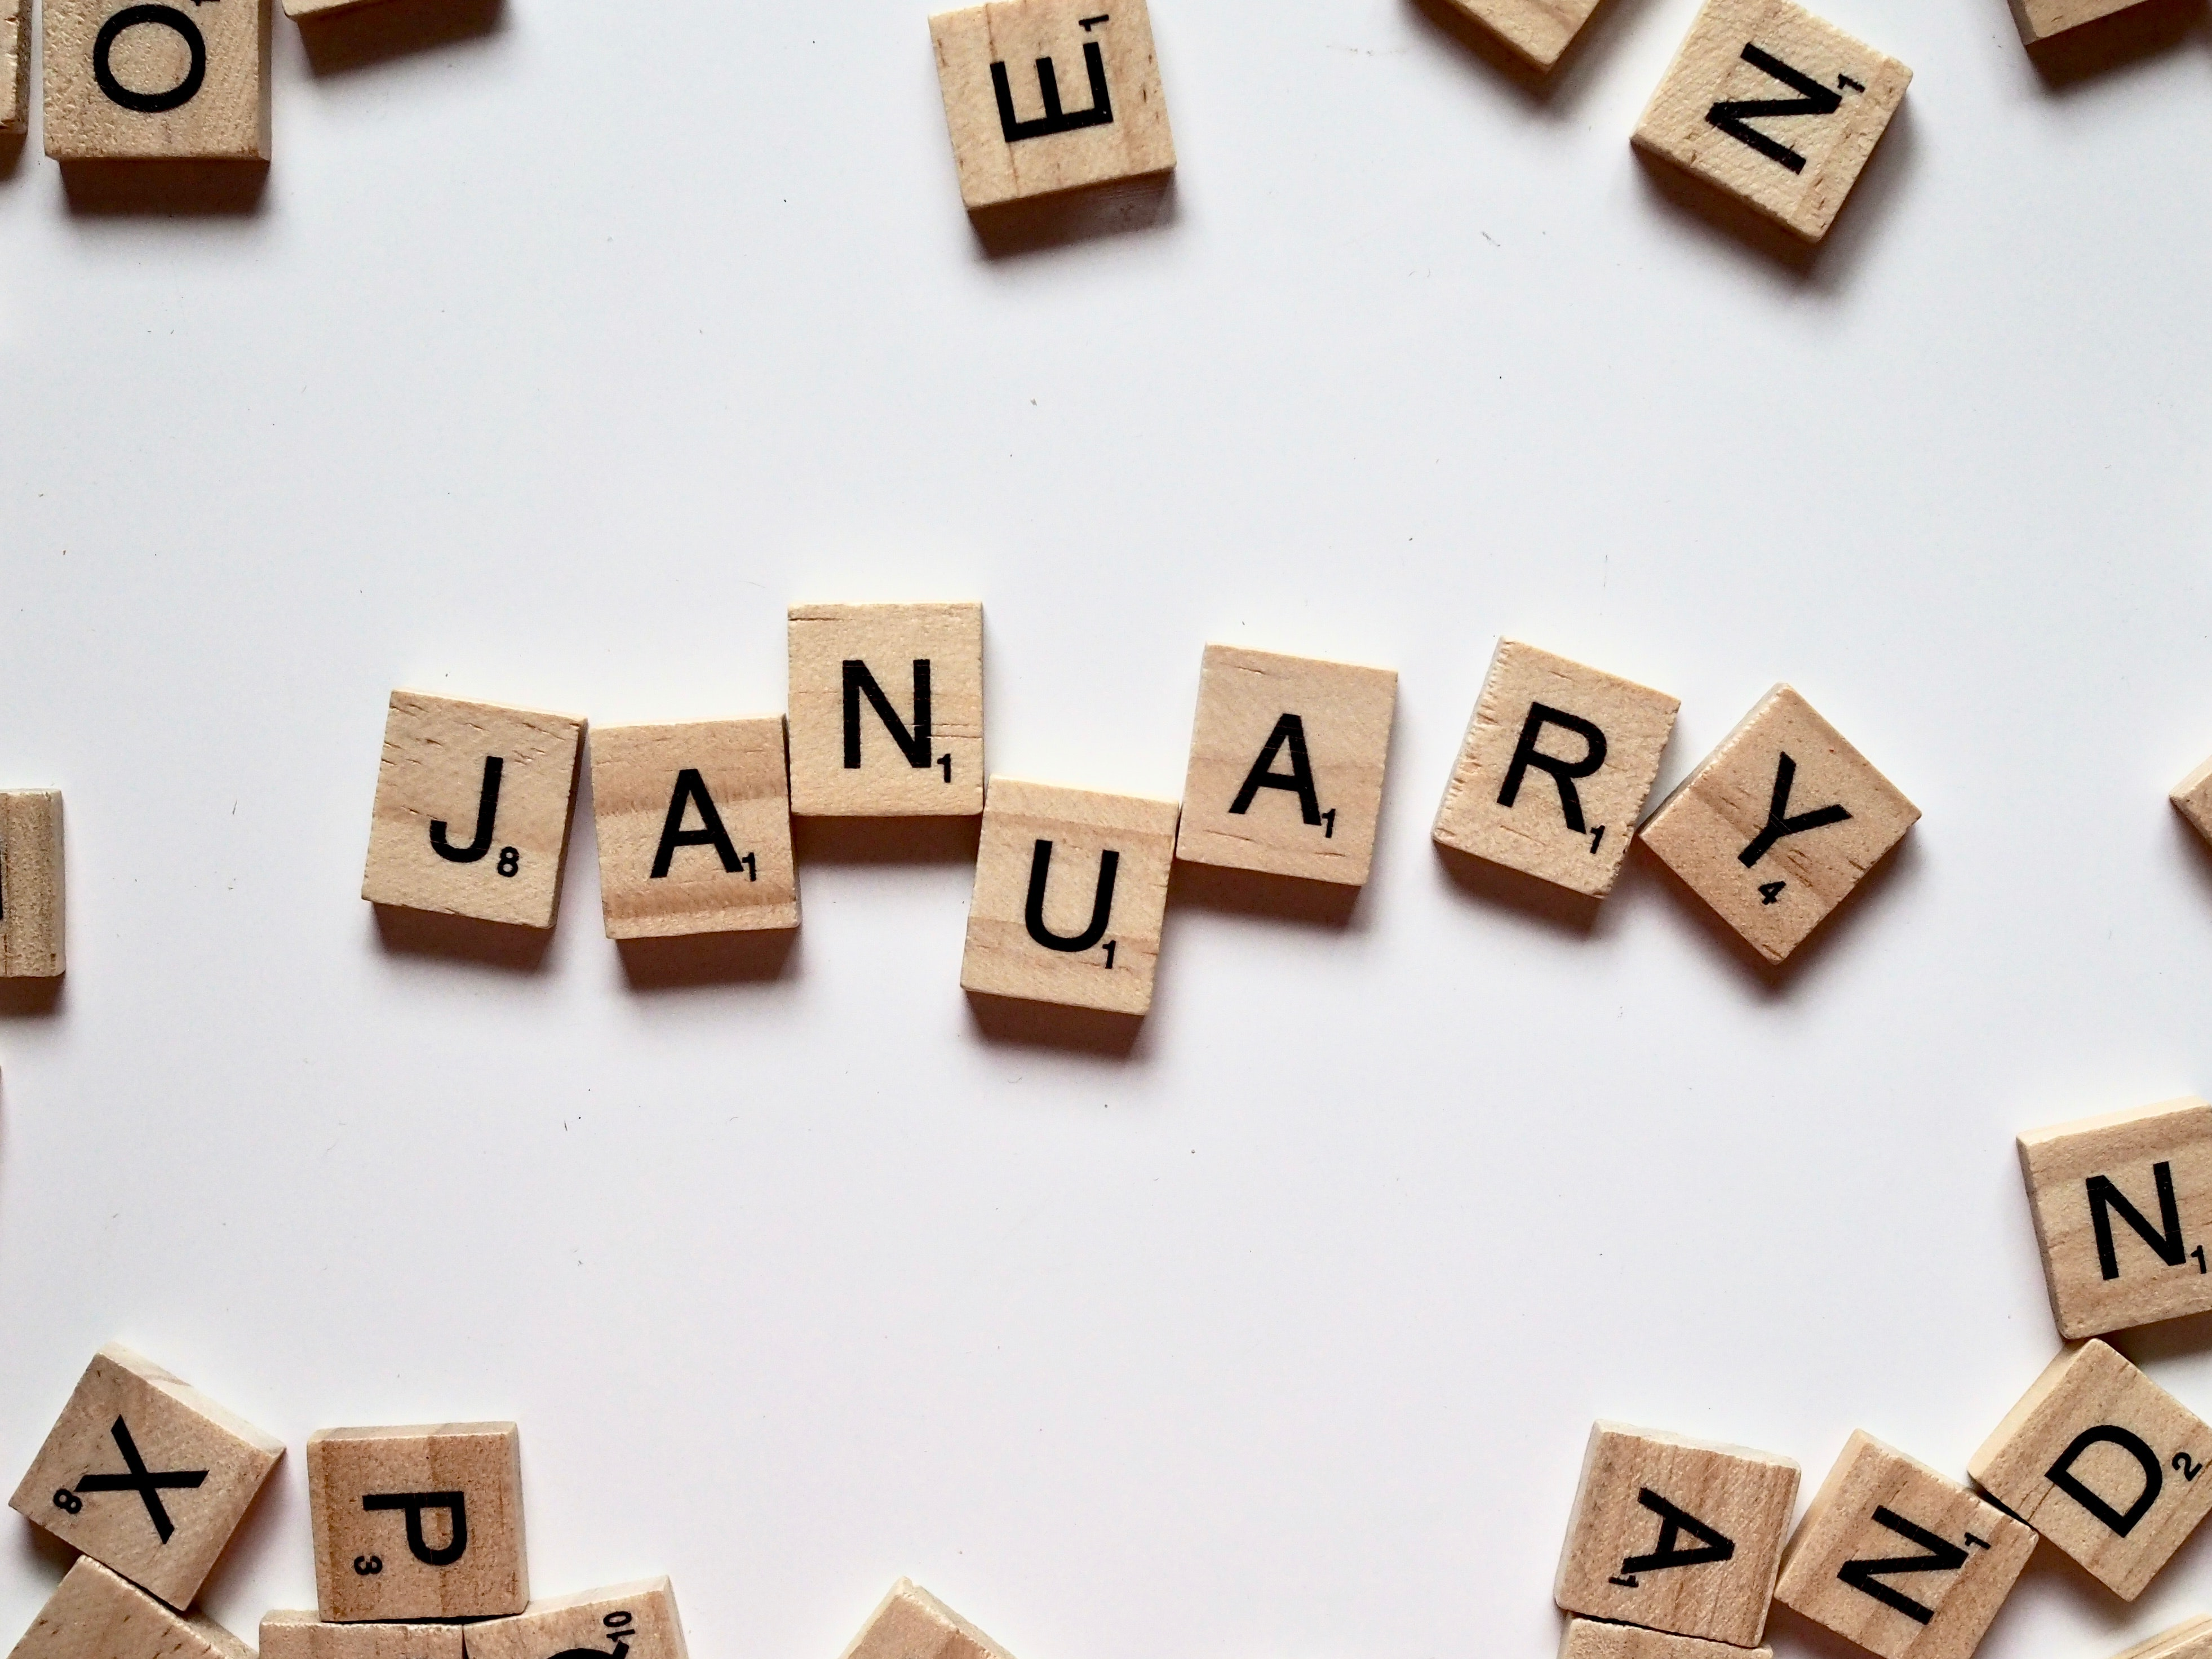 January: The month of Better